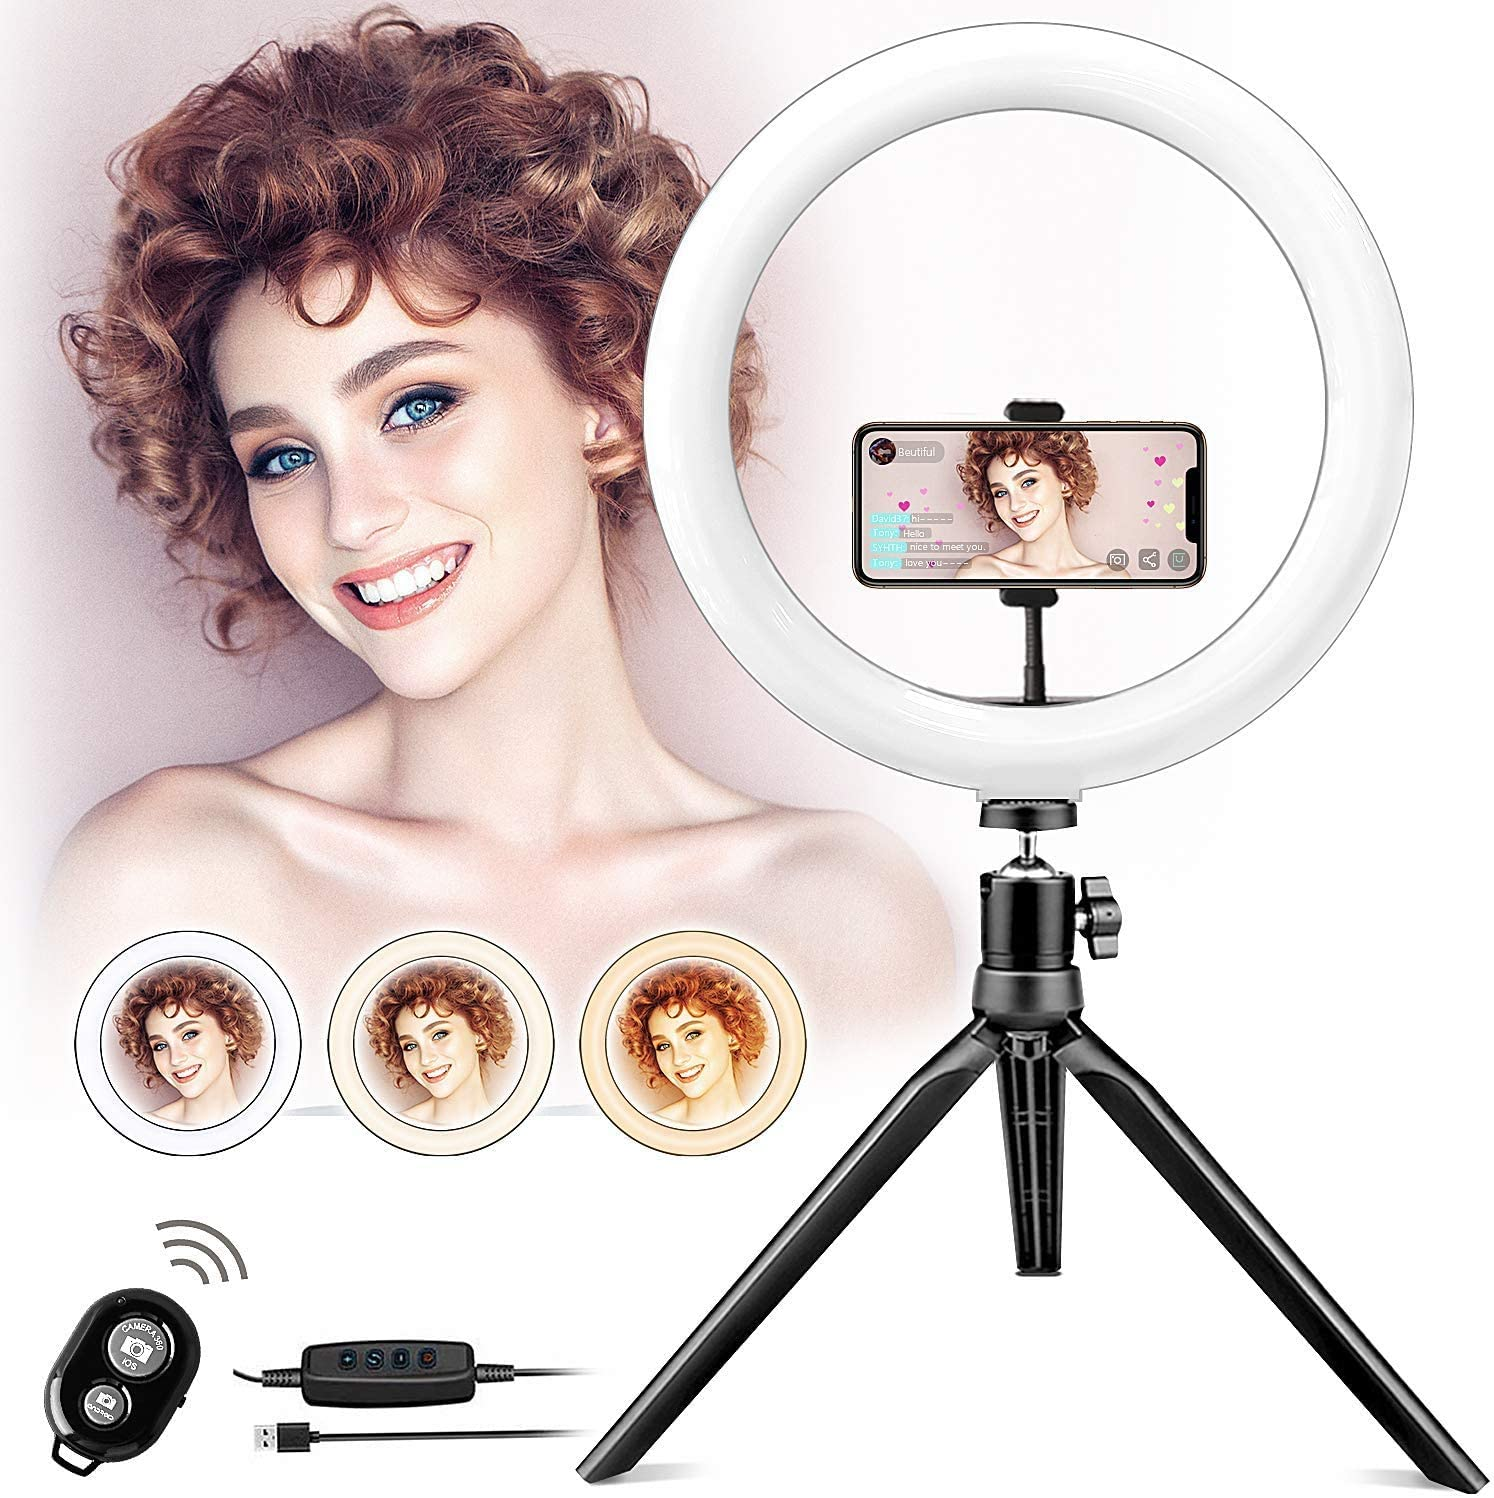 10 Inch Led Ring Light with Tripod Stand and Phone Holder, 3 Colors 10 Brightness Dimmable WAS £15.99 NOW £8.79 w/code MURVLGZB @ Amazon